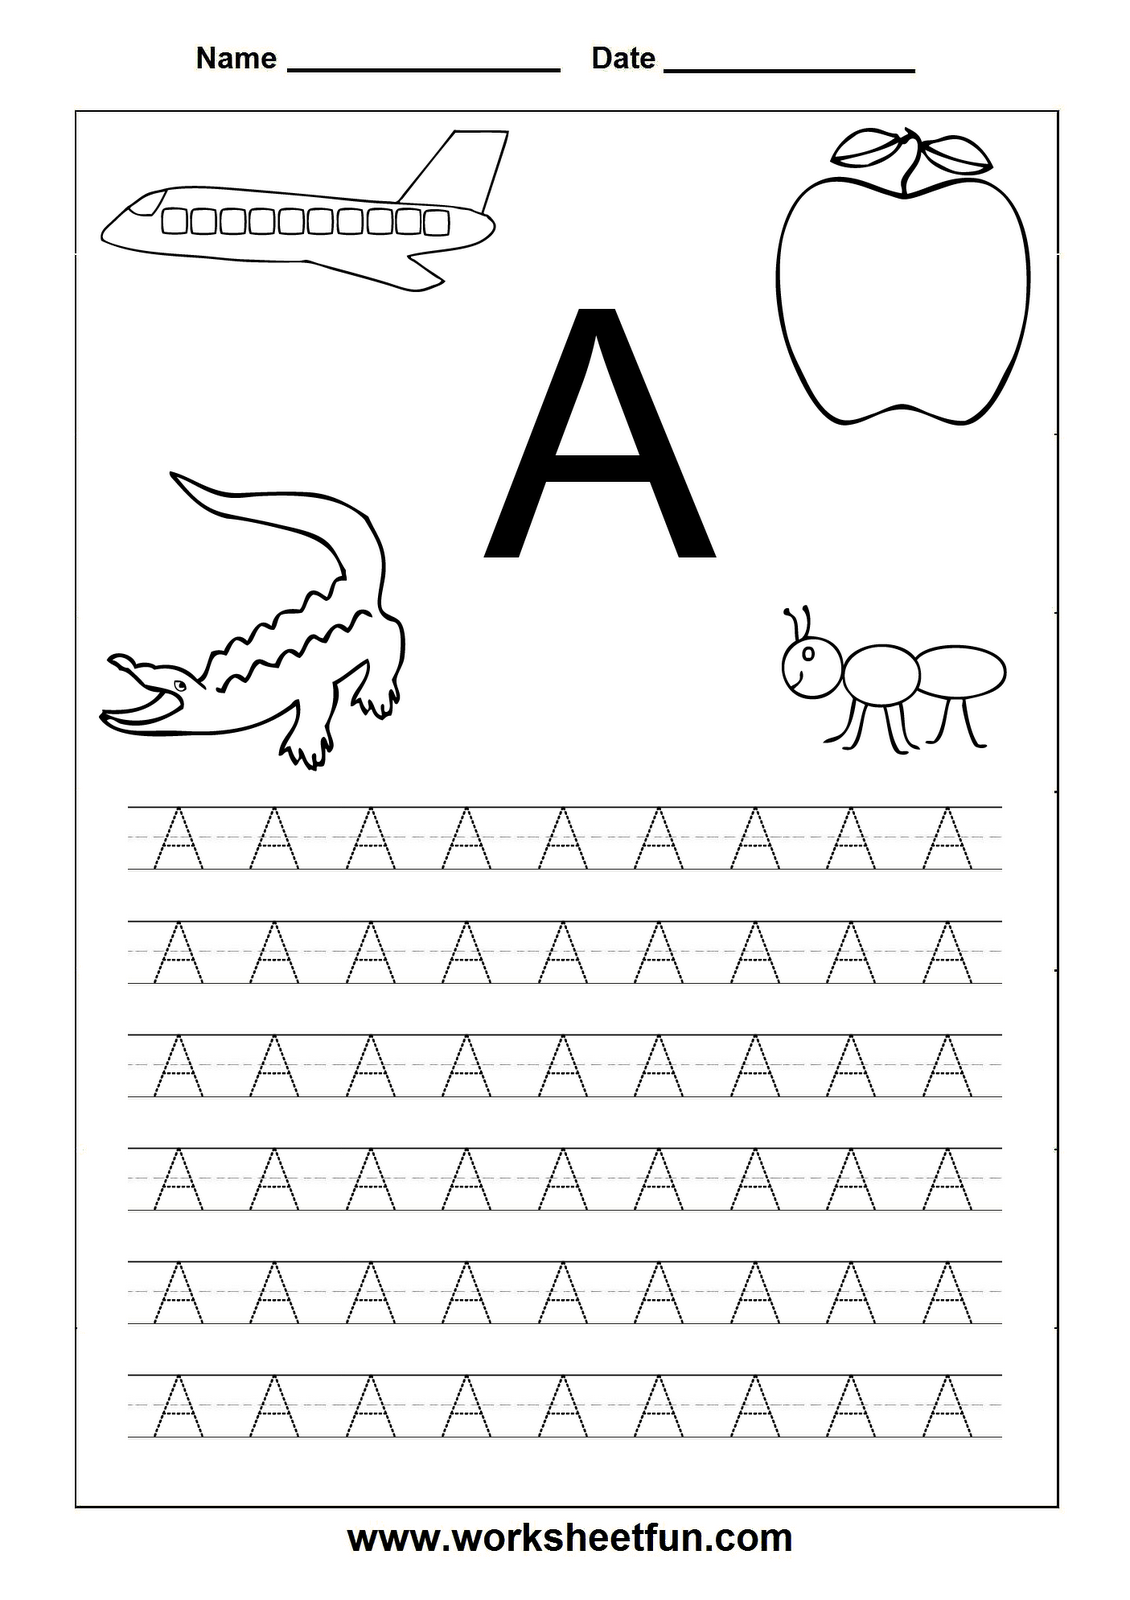 Worksheets For Letter A In